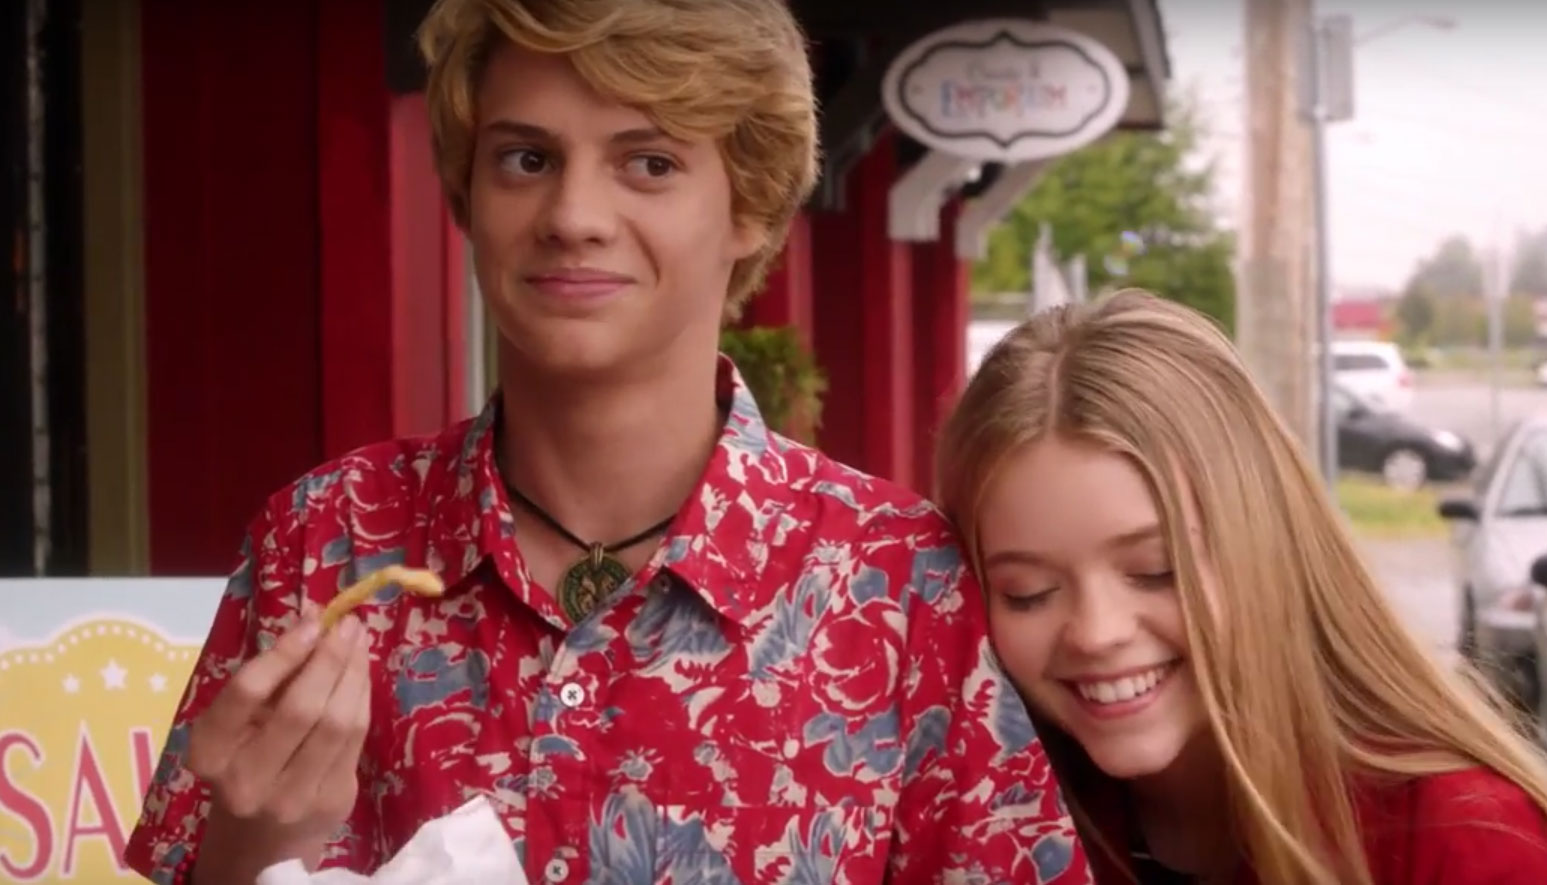 VIDEO: Jace Norman & Jade Pettyjohn Make Odd Couple in 'Rufus 2′ Trailer! |  Davis Cleveland, haley tjju, Jace Norman, Jade Pettyjohn, Movies, Rufus 2,  ...